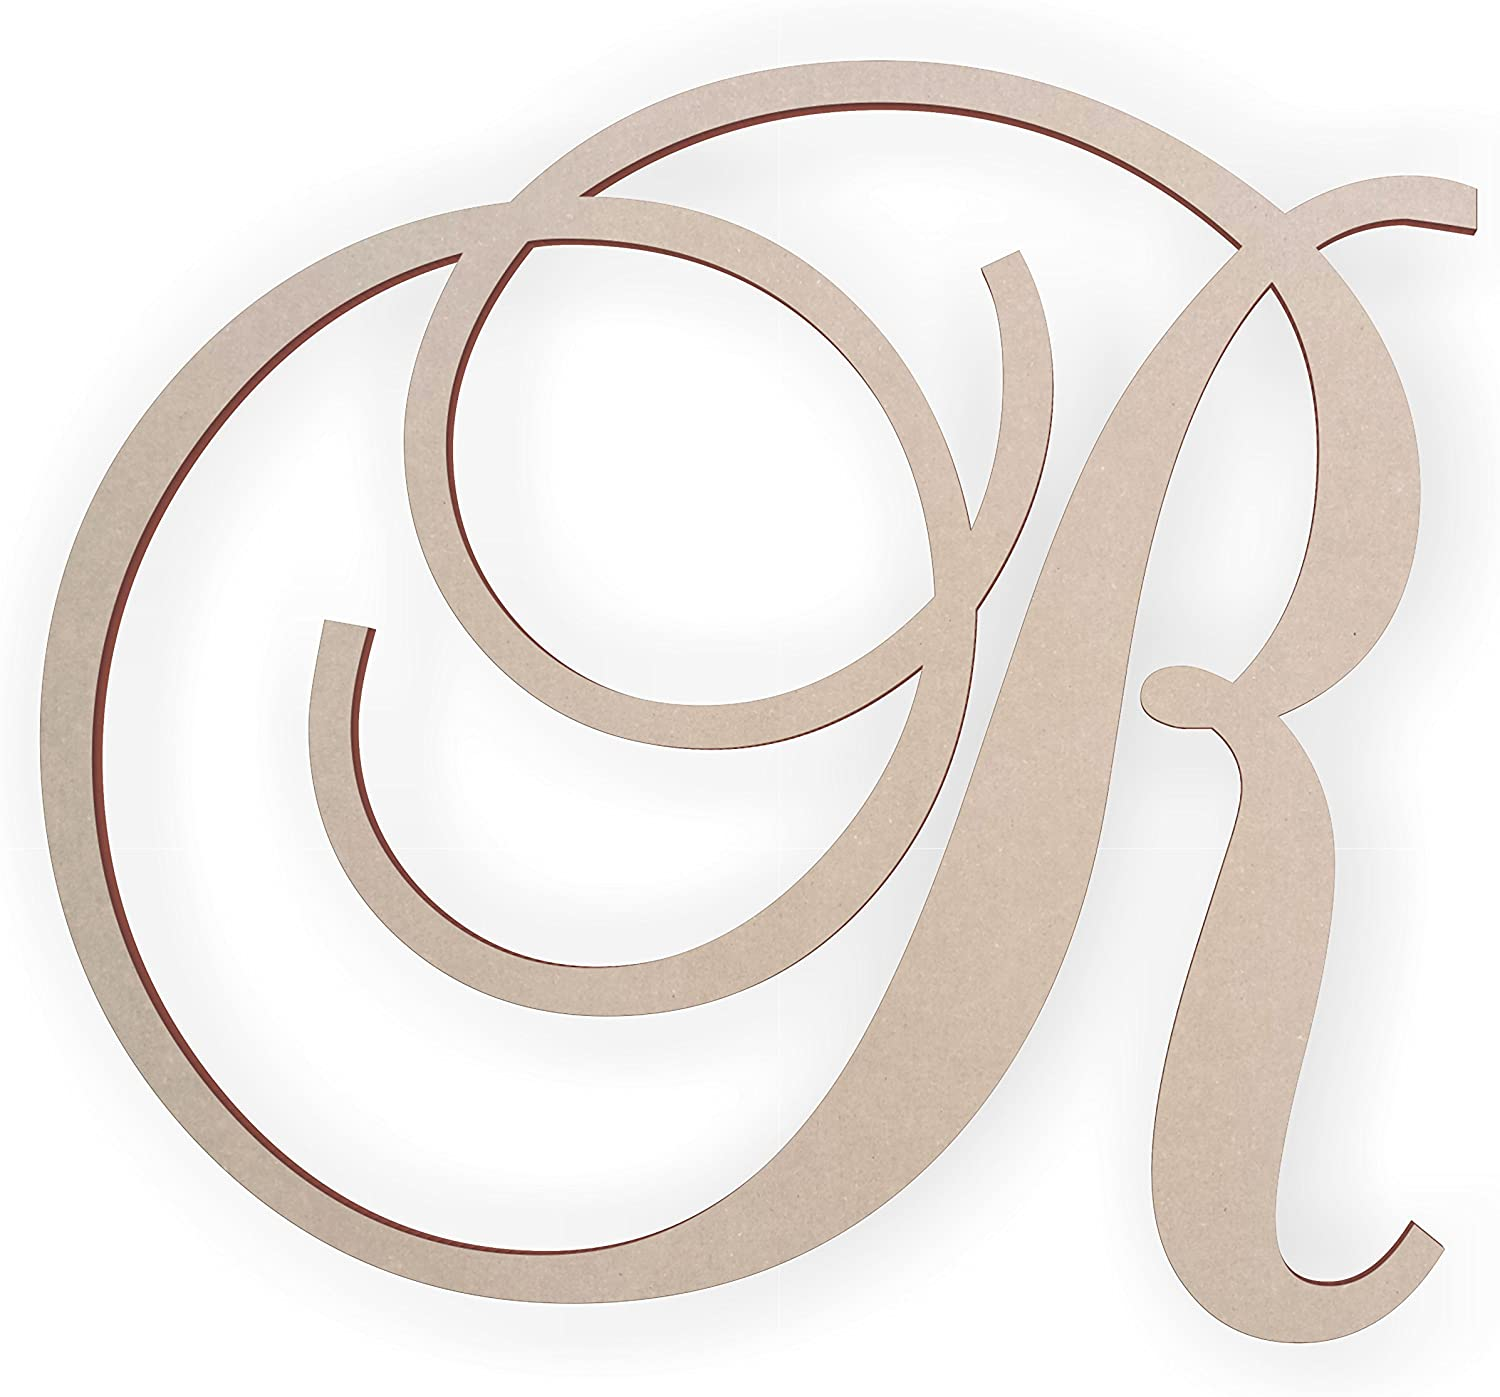 Jess and Jessica Wooden Letter R, Wooden Monogram Wall Hanging, Large Wooden Letters, Cursive Wood Letter